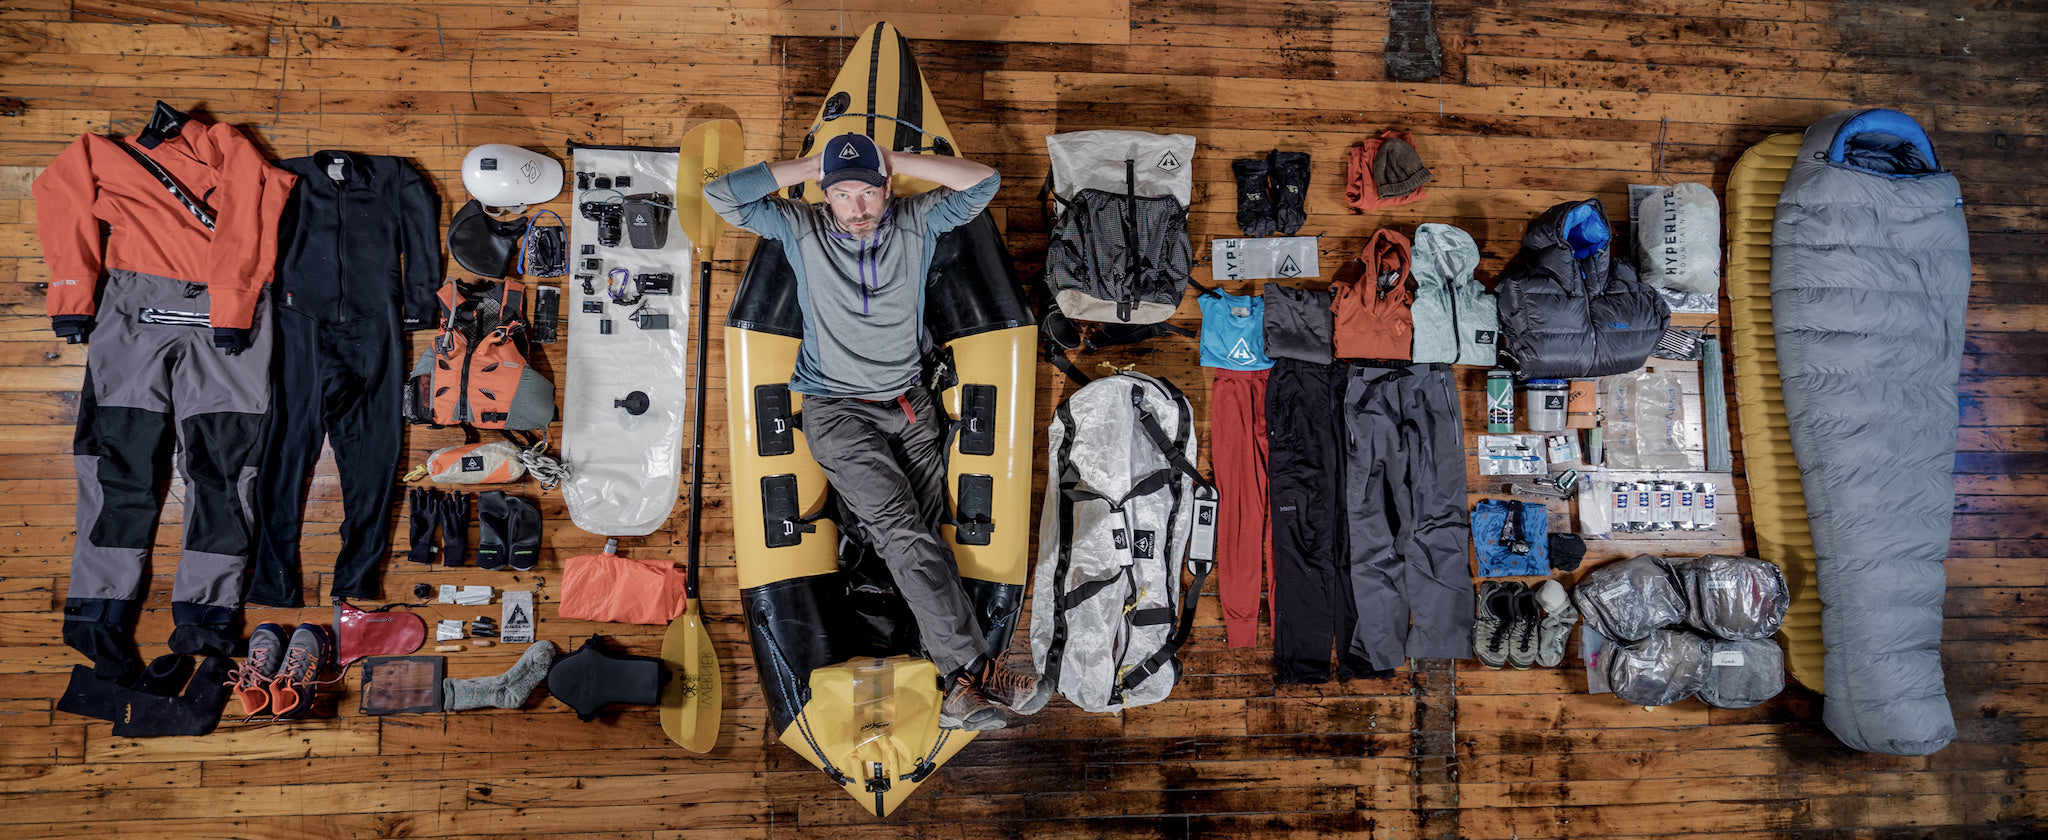 INTRODUCTION: OUR CASE FOR ULTRALIGHT BACKPACKING